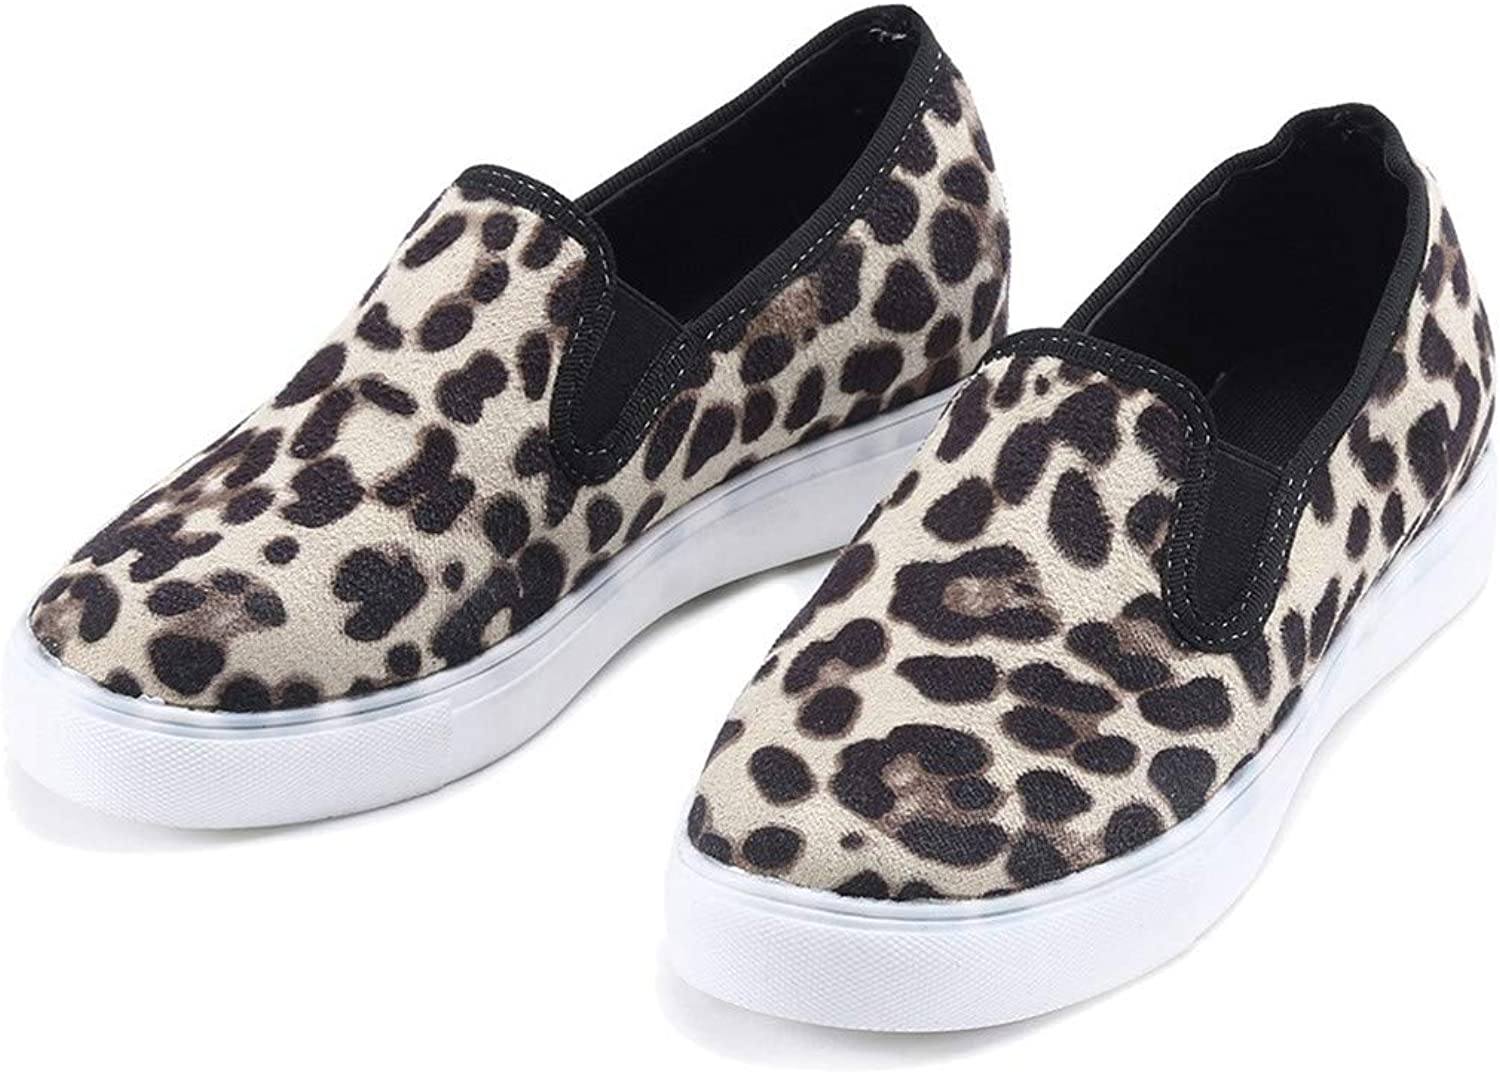 Women Fashion Retro Leopard Flock Loafers Round Toe Casual shoes